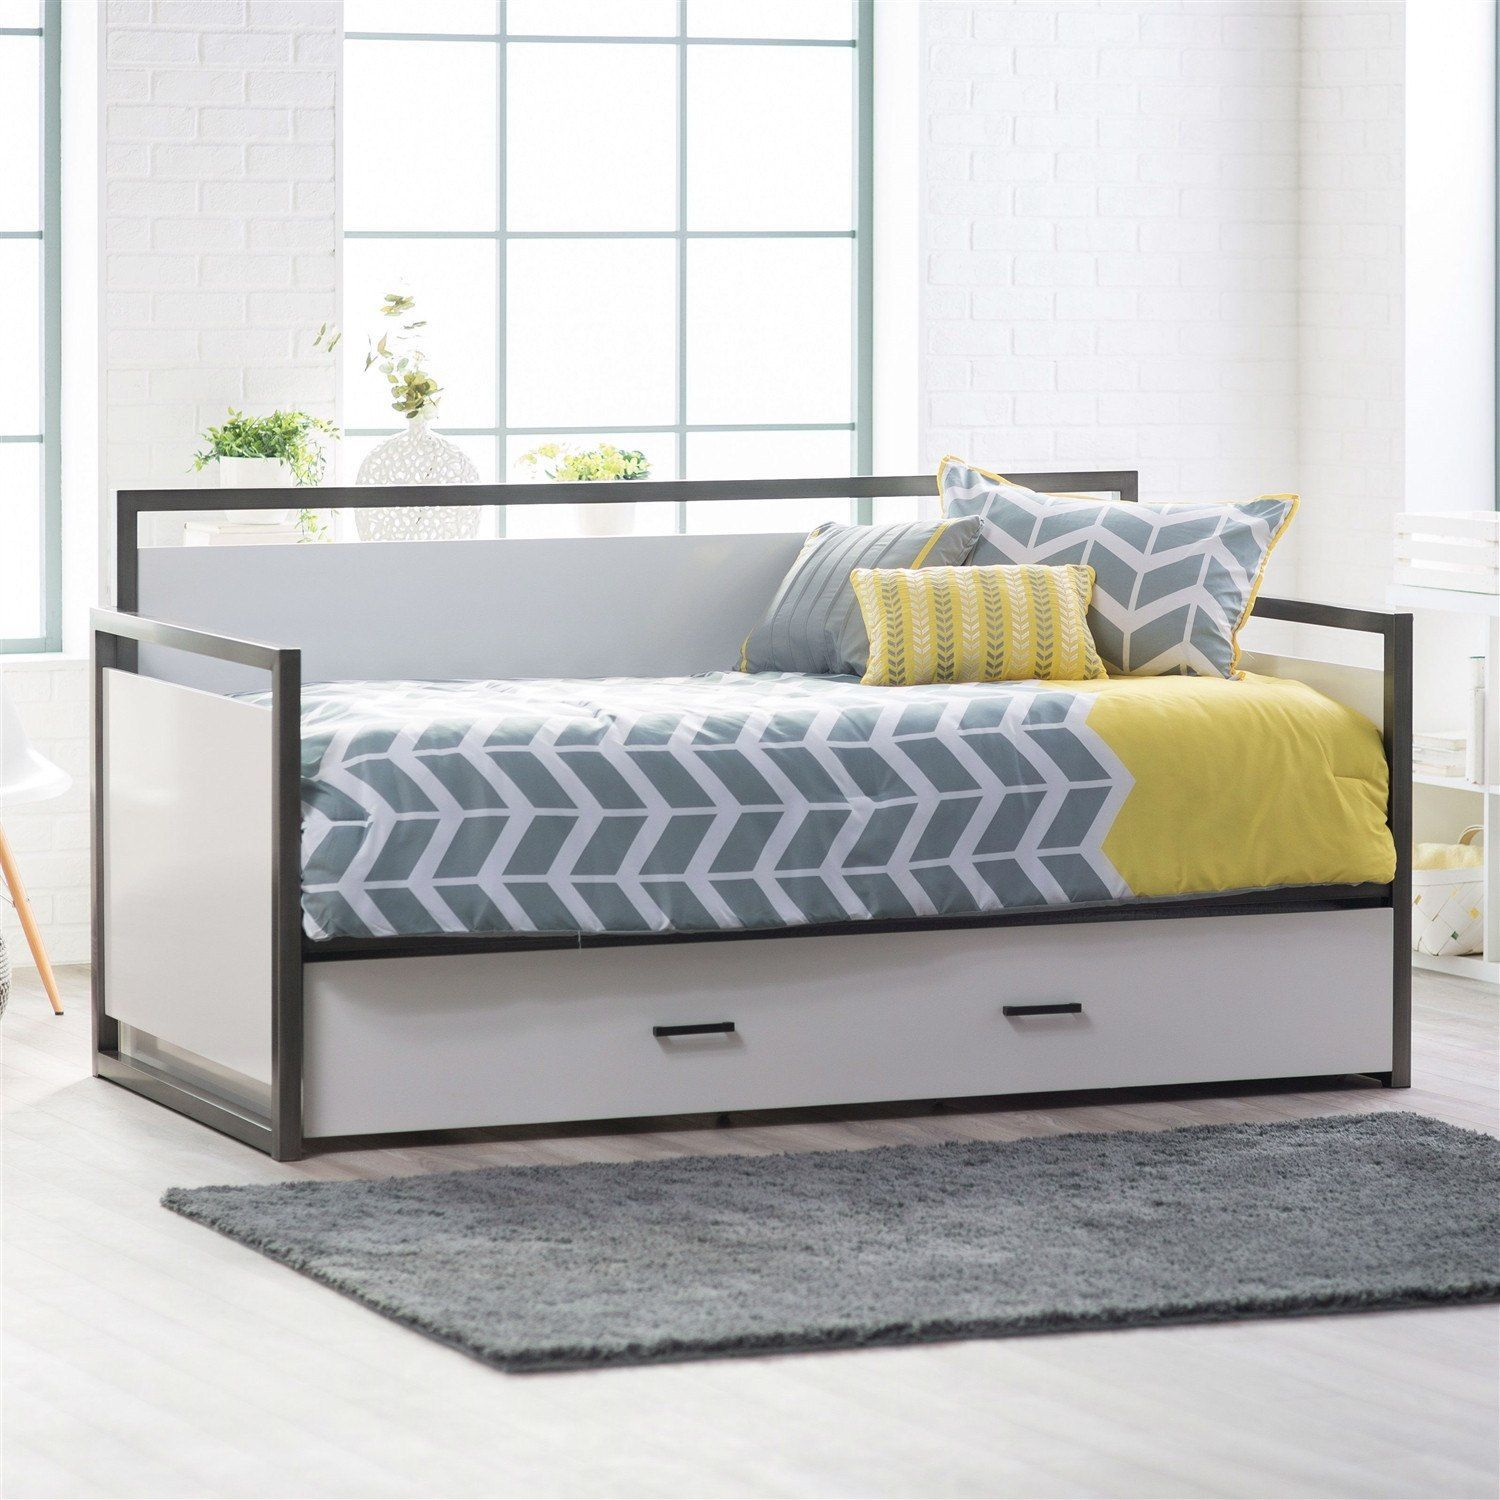 Twin size modern metal frame daybed with pull out trundle bed in glossy white finish